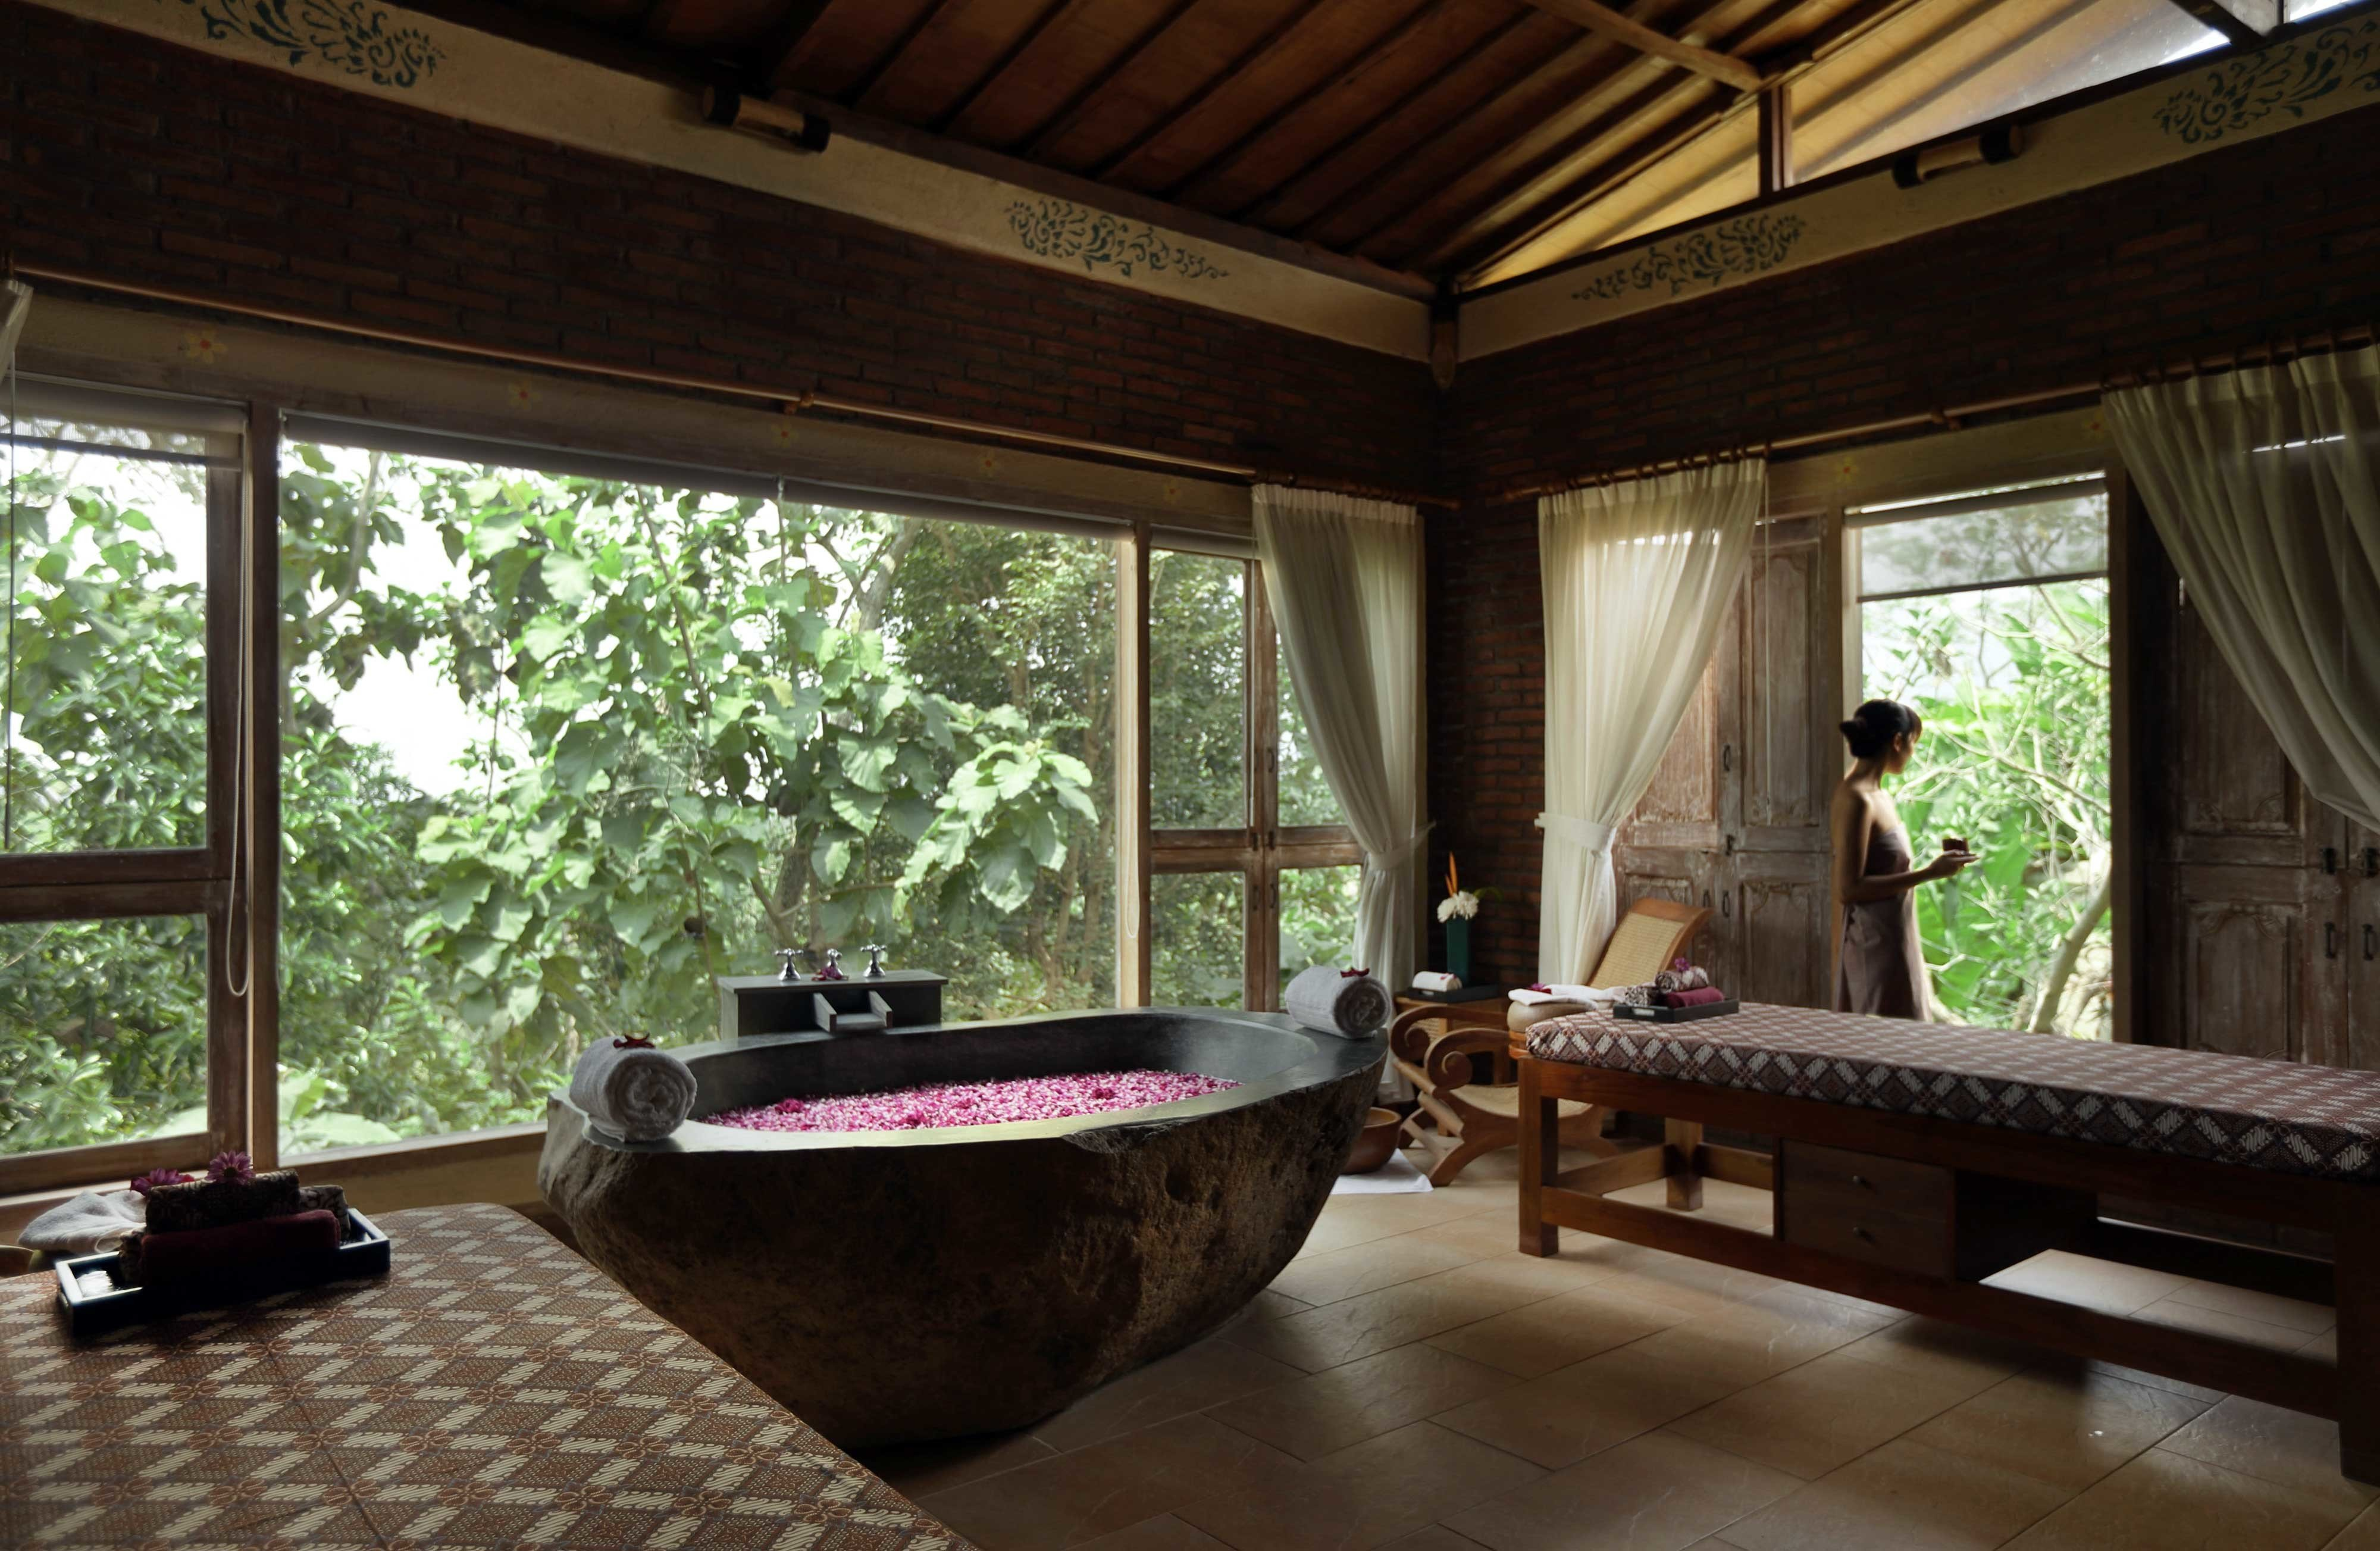 Cultural Elegant Hot tub/Jacuzzi Jungle Luxury Rustic Scenic views Spa Villa Wellness property house building home living room cottage mansion swimming pool backyard stone